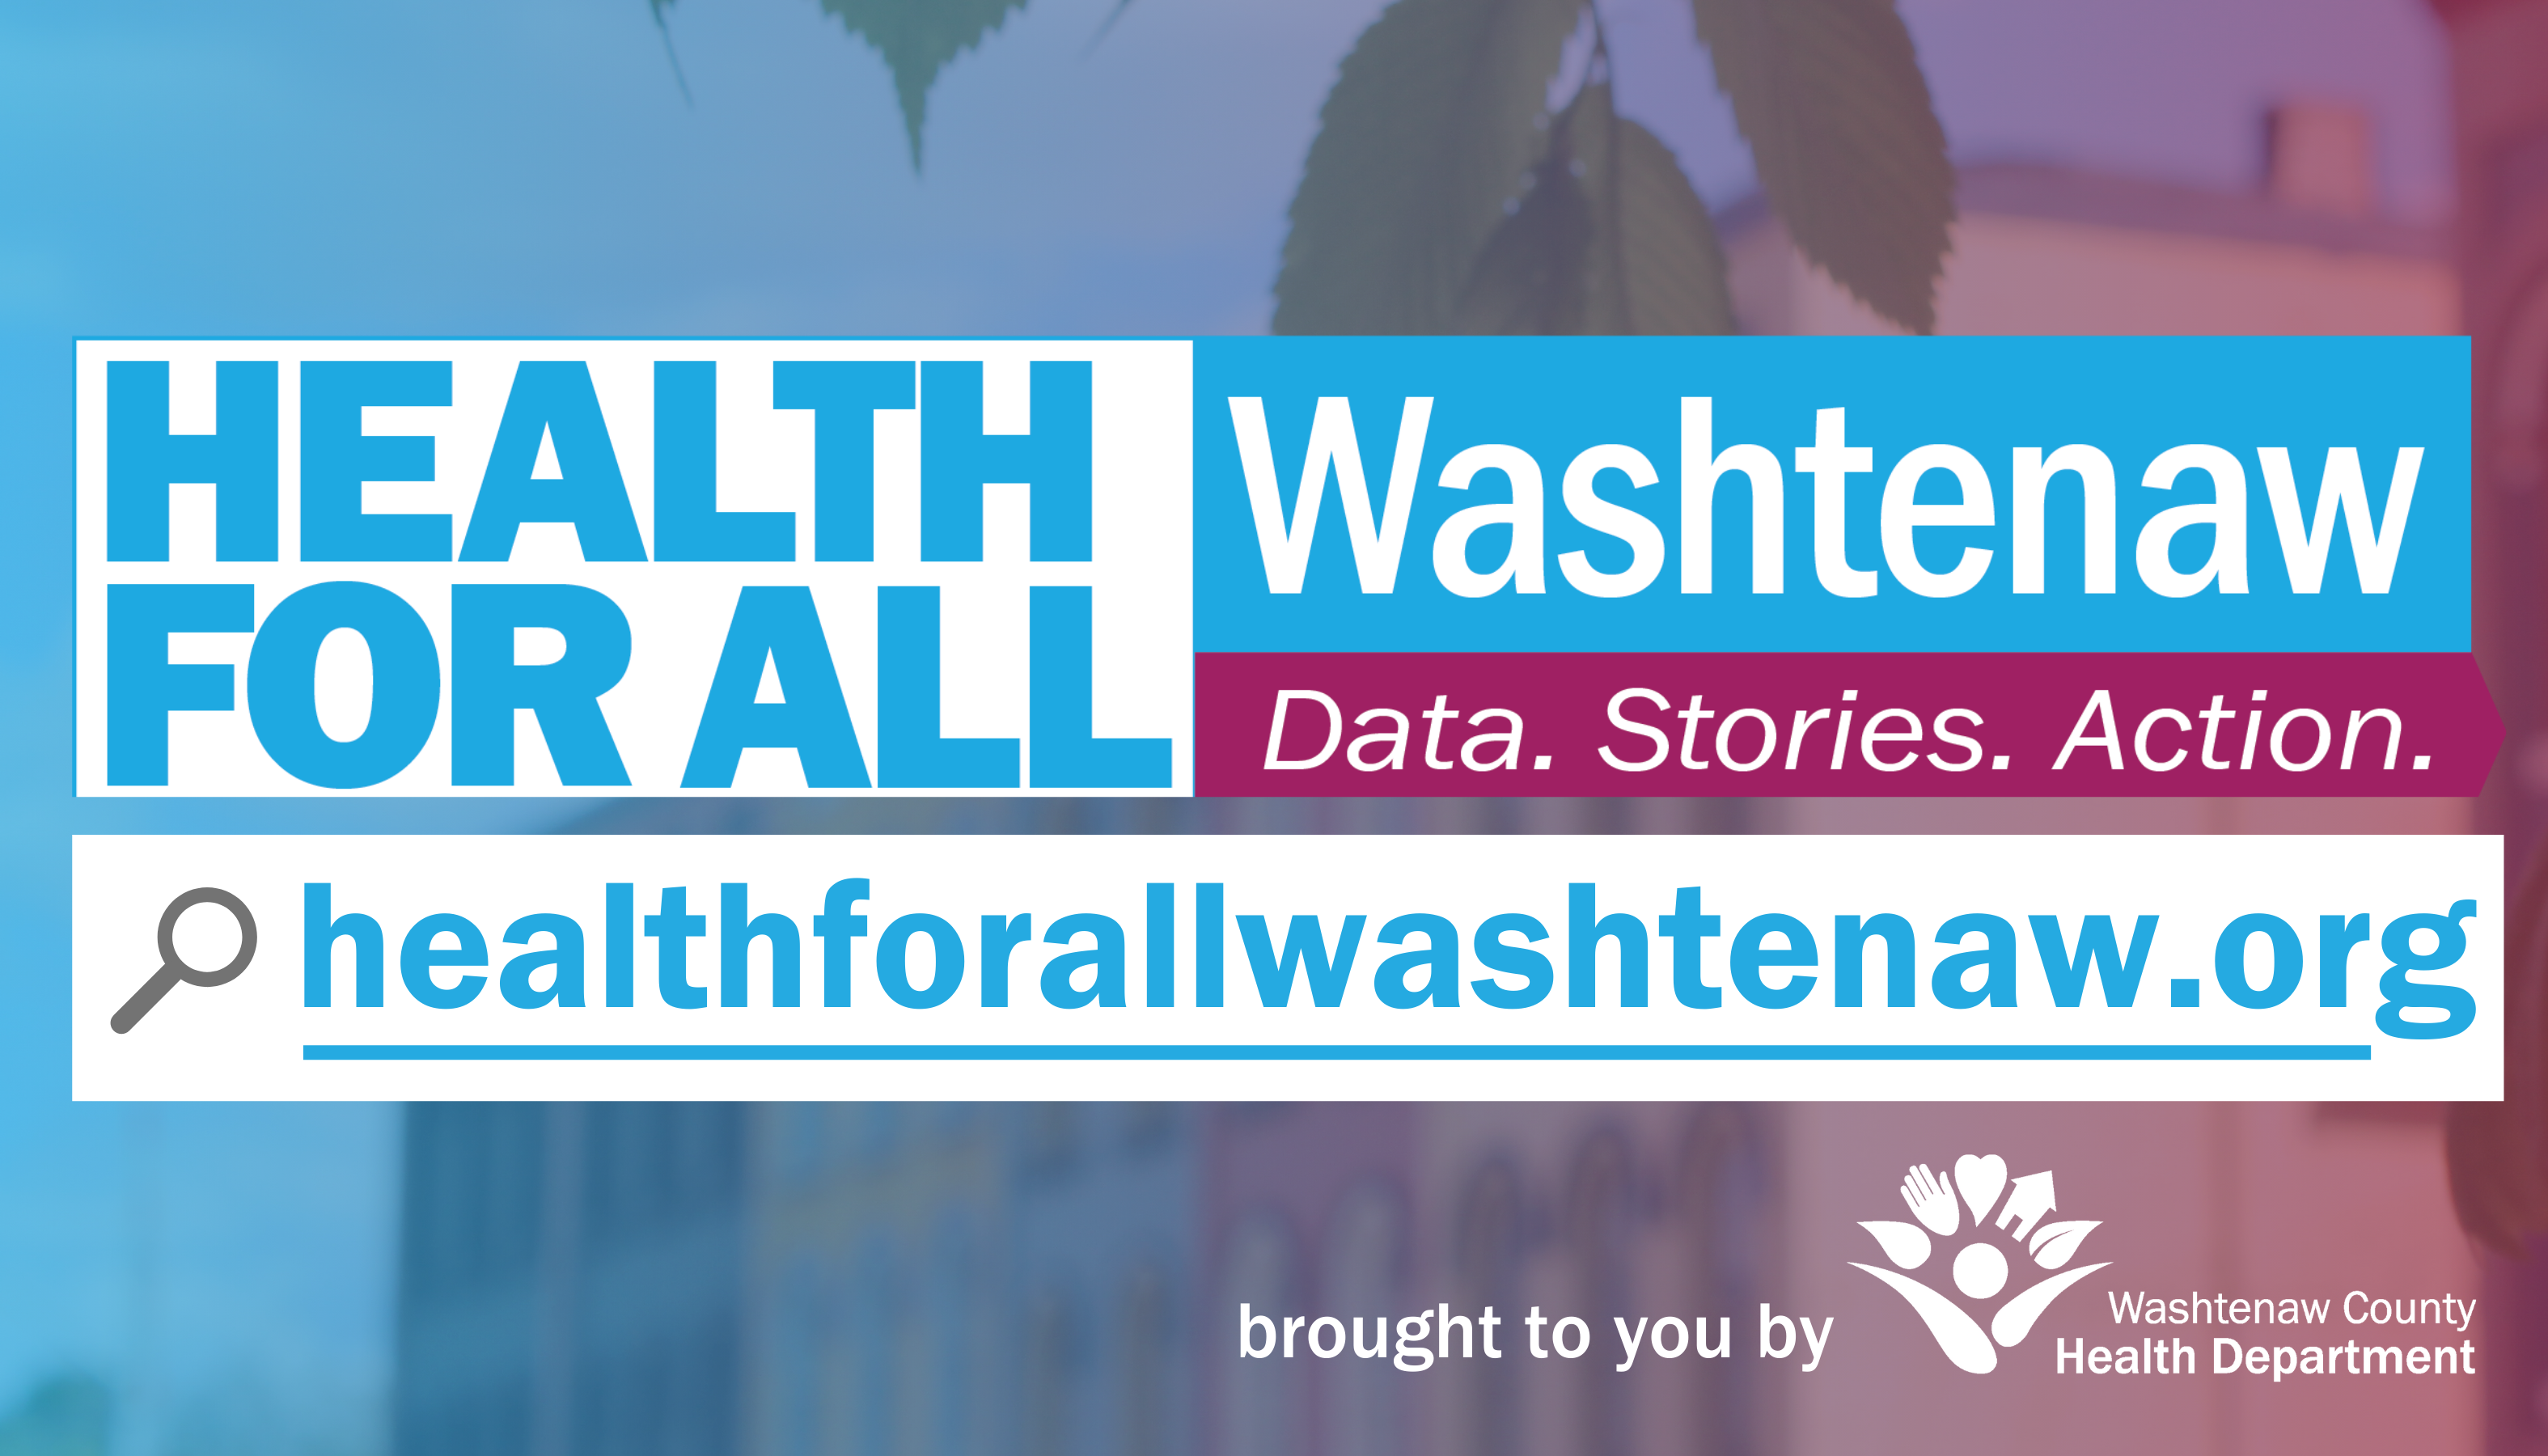 Health for All Washtenaw card, front